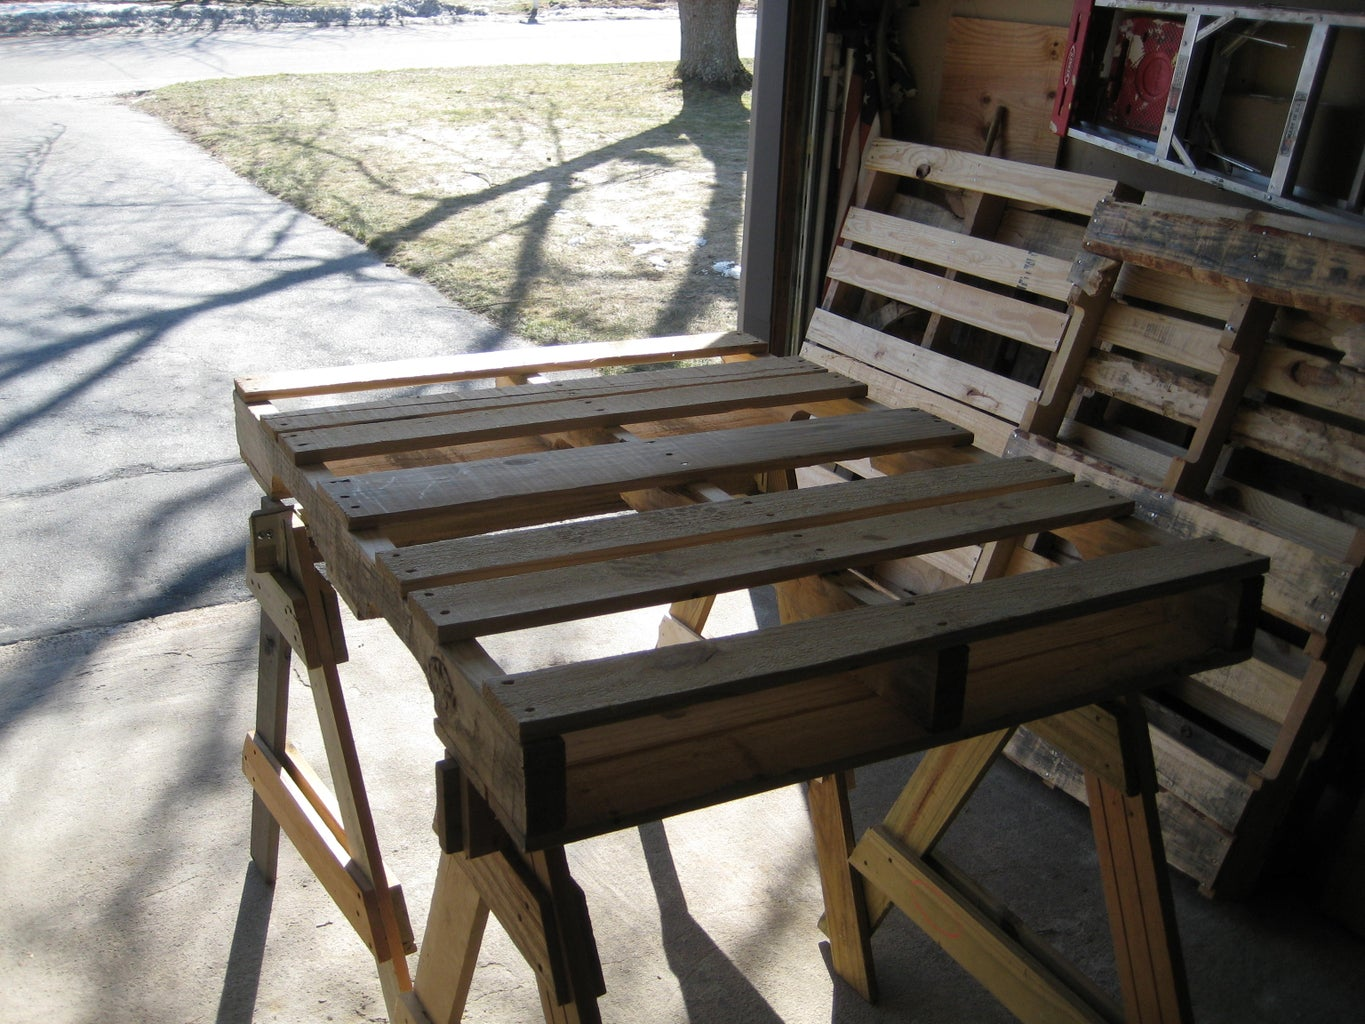 The Low-down on Pallets